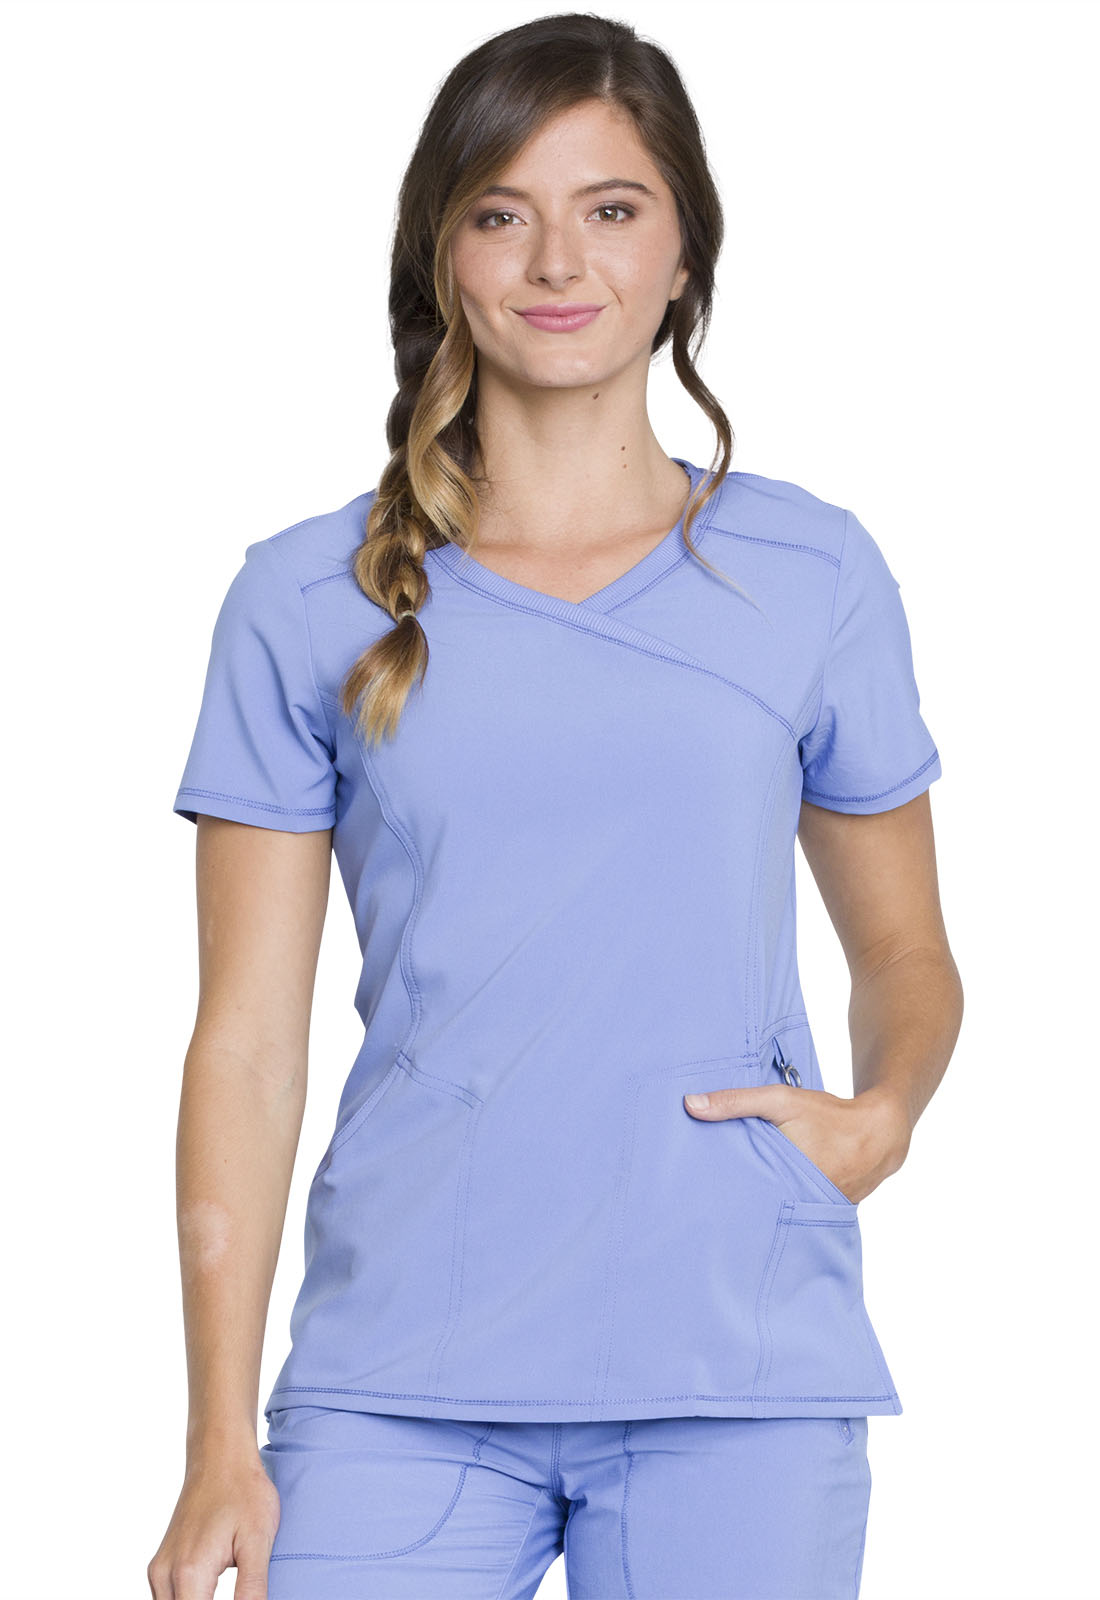 682ba73f8a6 Infinity Mock Wrap Top in Ciel 2625A-CIPS from All About Uniforms ...